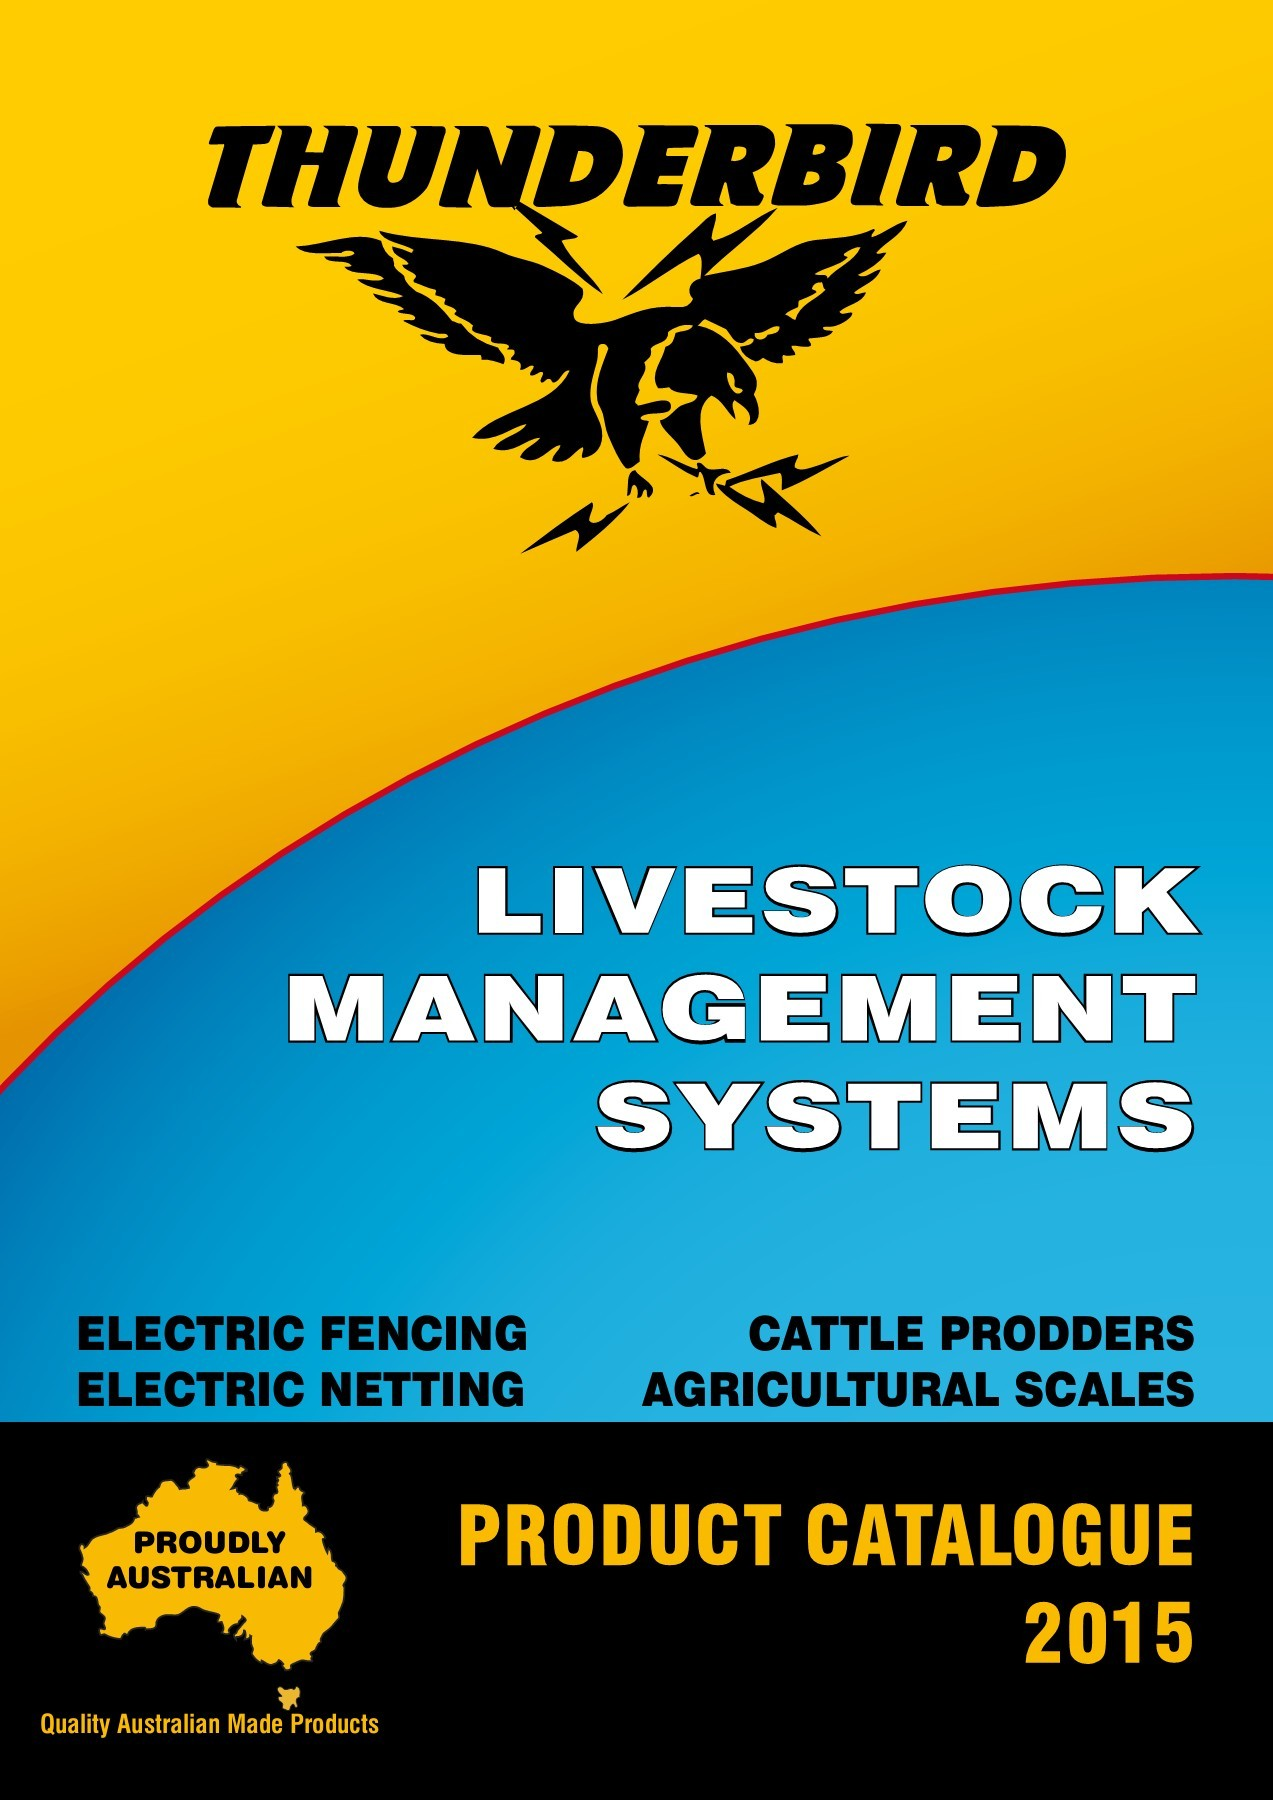 Wiring for A Ef26 Flasher Livestock Management Systems Thunderbird Pages 1 32 Of Wiring for A Ef26 Flasher